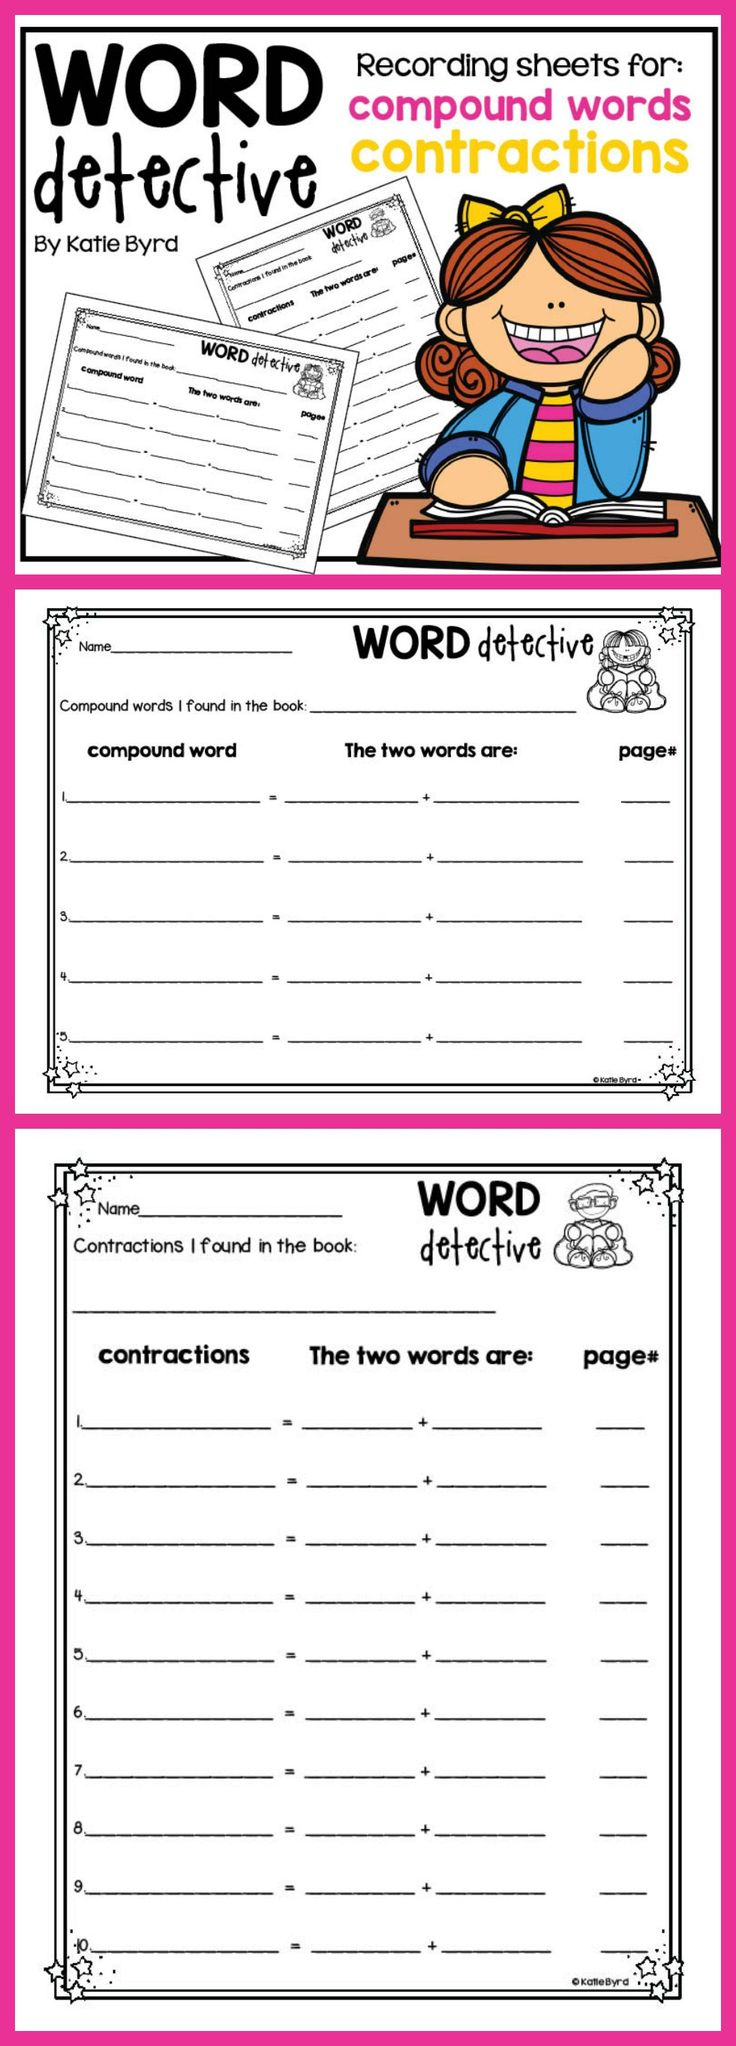 This is a sweet set of recording sheets for open ended word work.  Students can use these to find compound words and contractions in ANY book.  Just print and go!  Made to save your ink and time.  Happy teaching! $